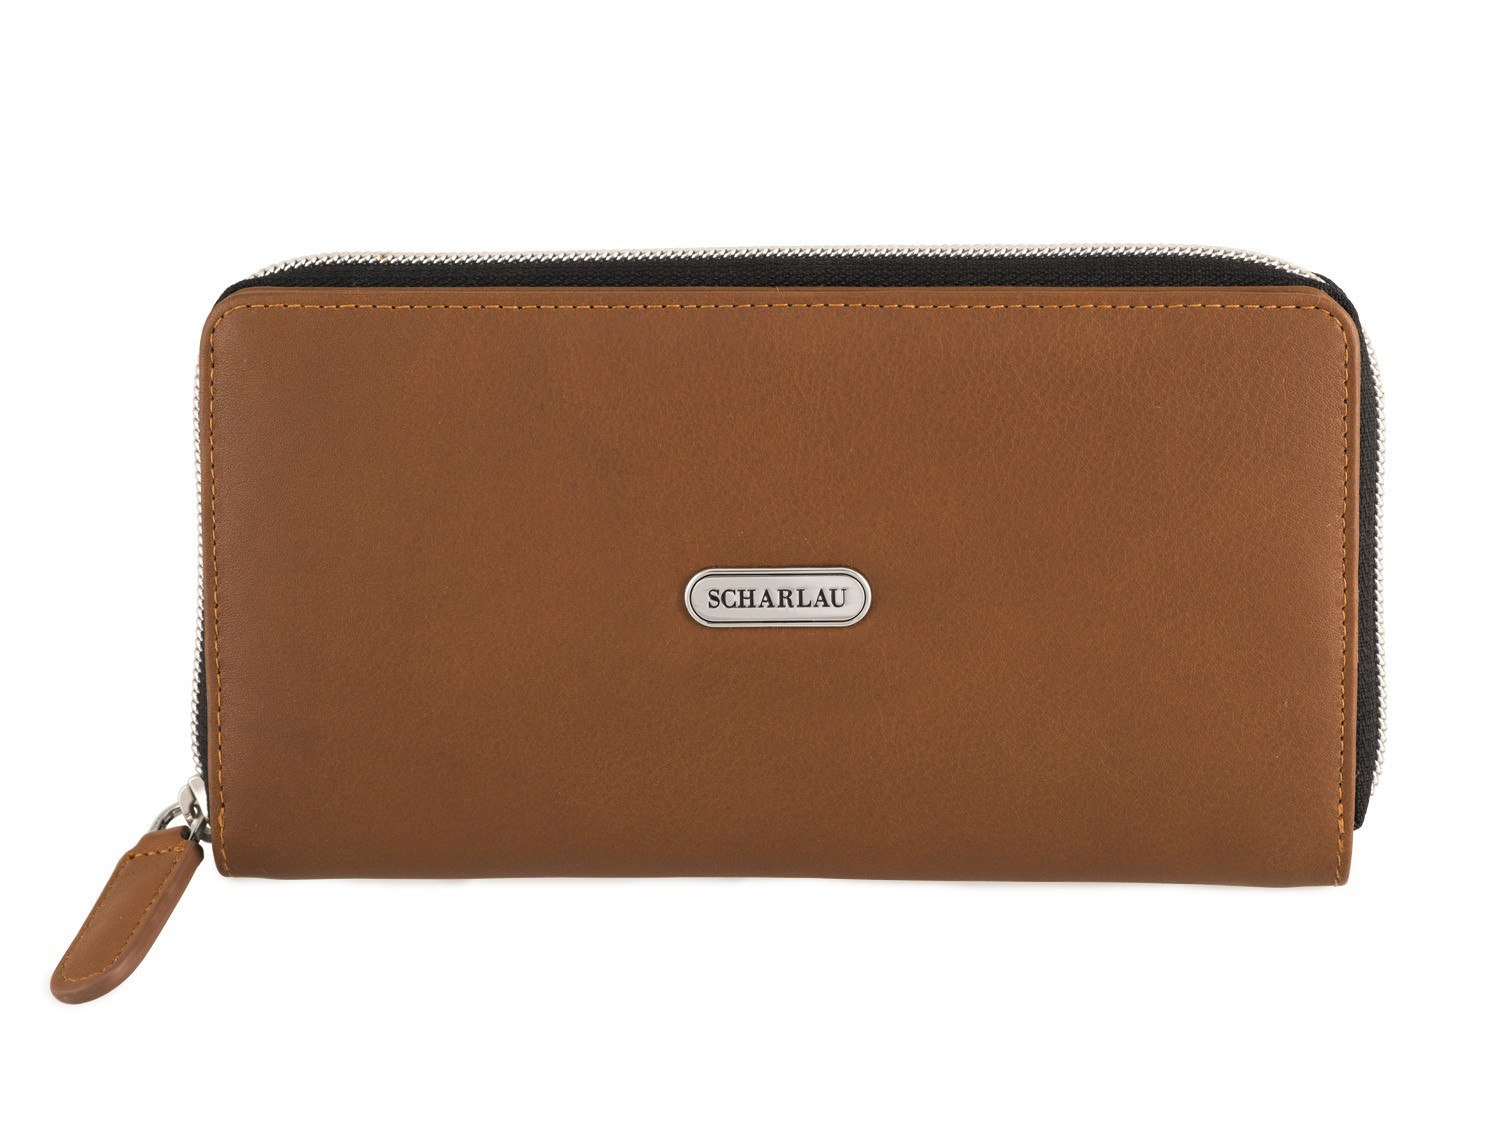 Leather women's wallet with coin pocket in camel front